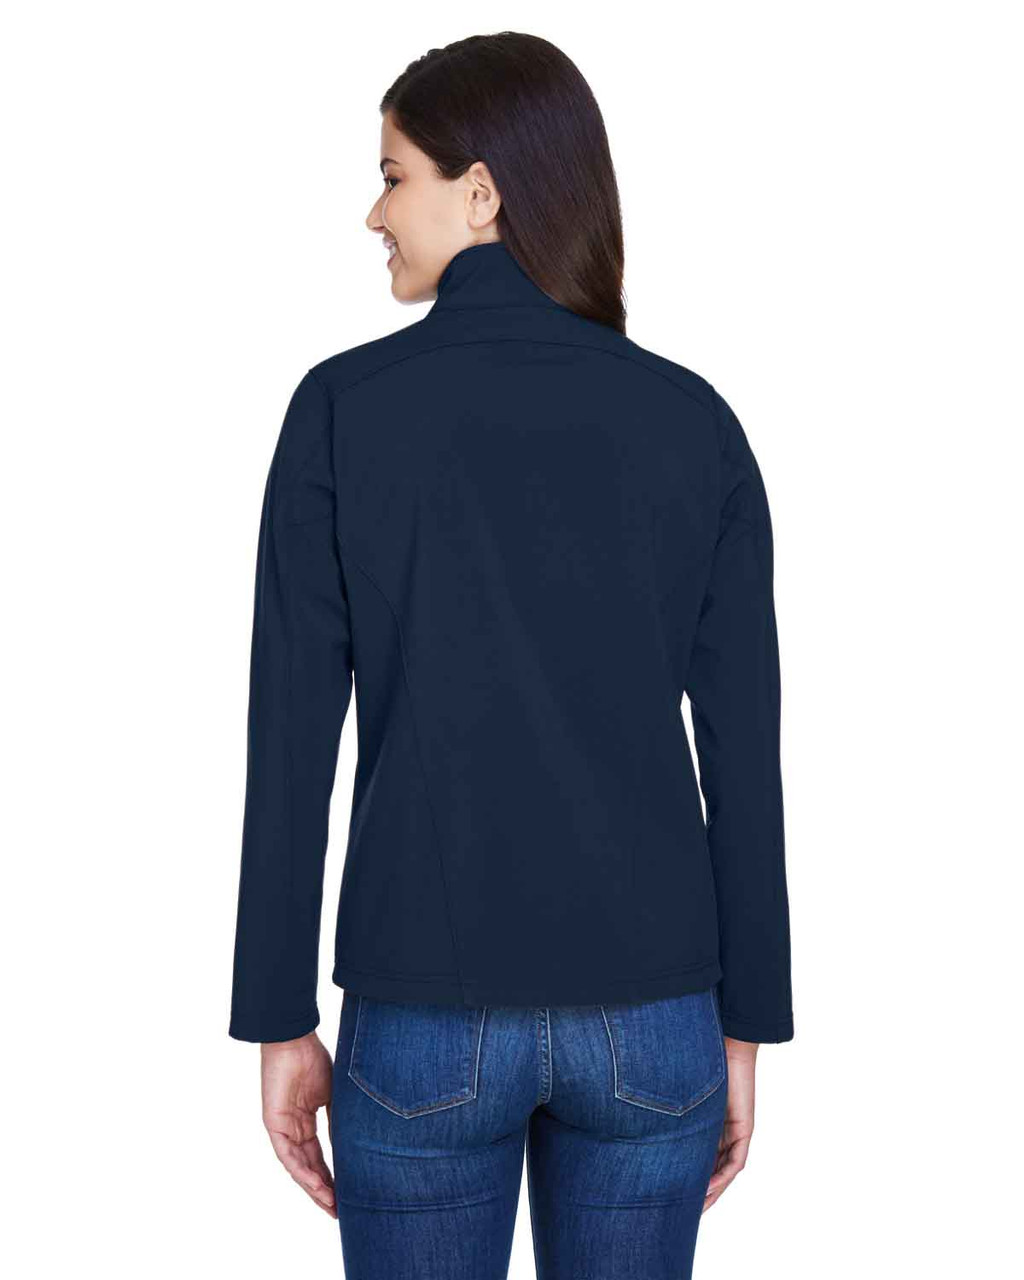 Classic Navy - Back, 78184 Core 365 Ladies' Fleece Soft Shell Jacket | Blankclothing.ca